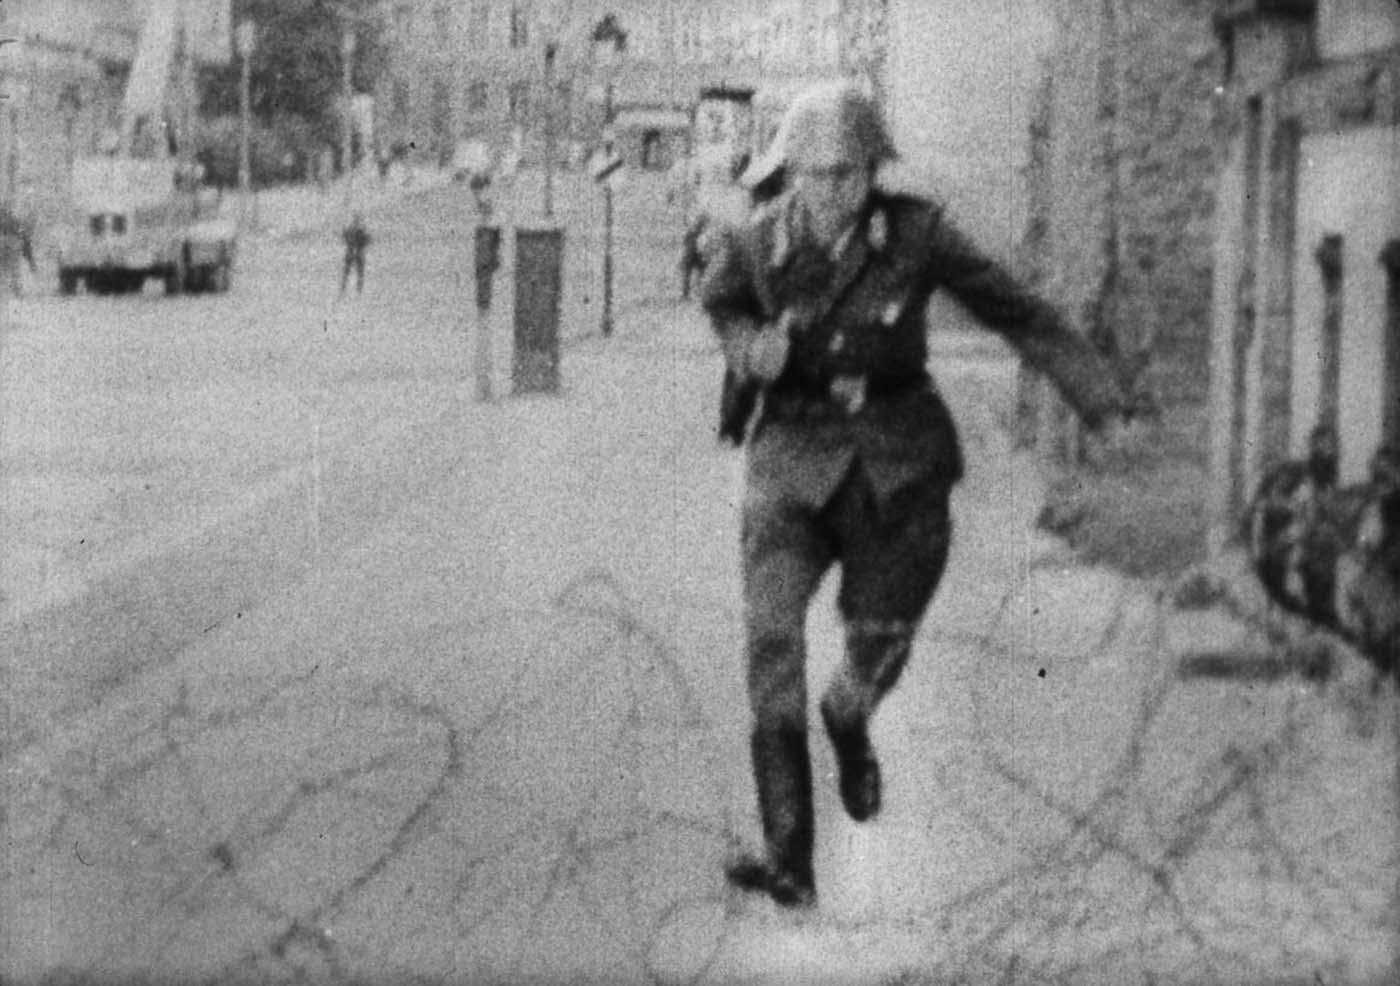 """Come on over, come on over!"" (Komm' rüber!) the West Berlin crowd on Bernauer Strasse chanted. (Still picture from the video footage)."